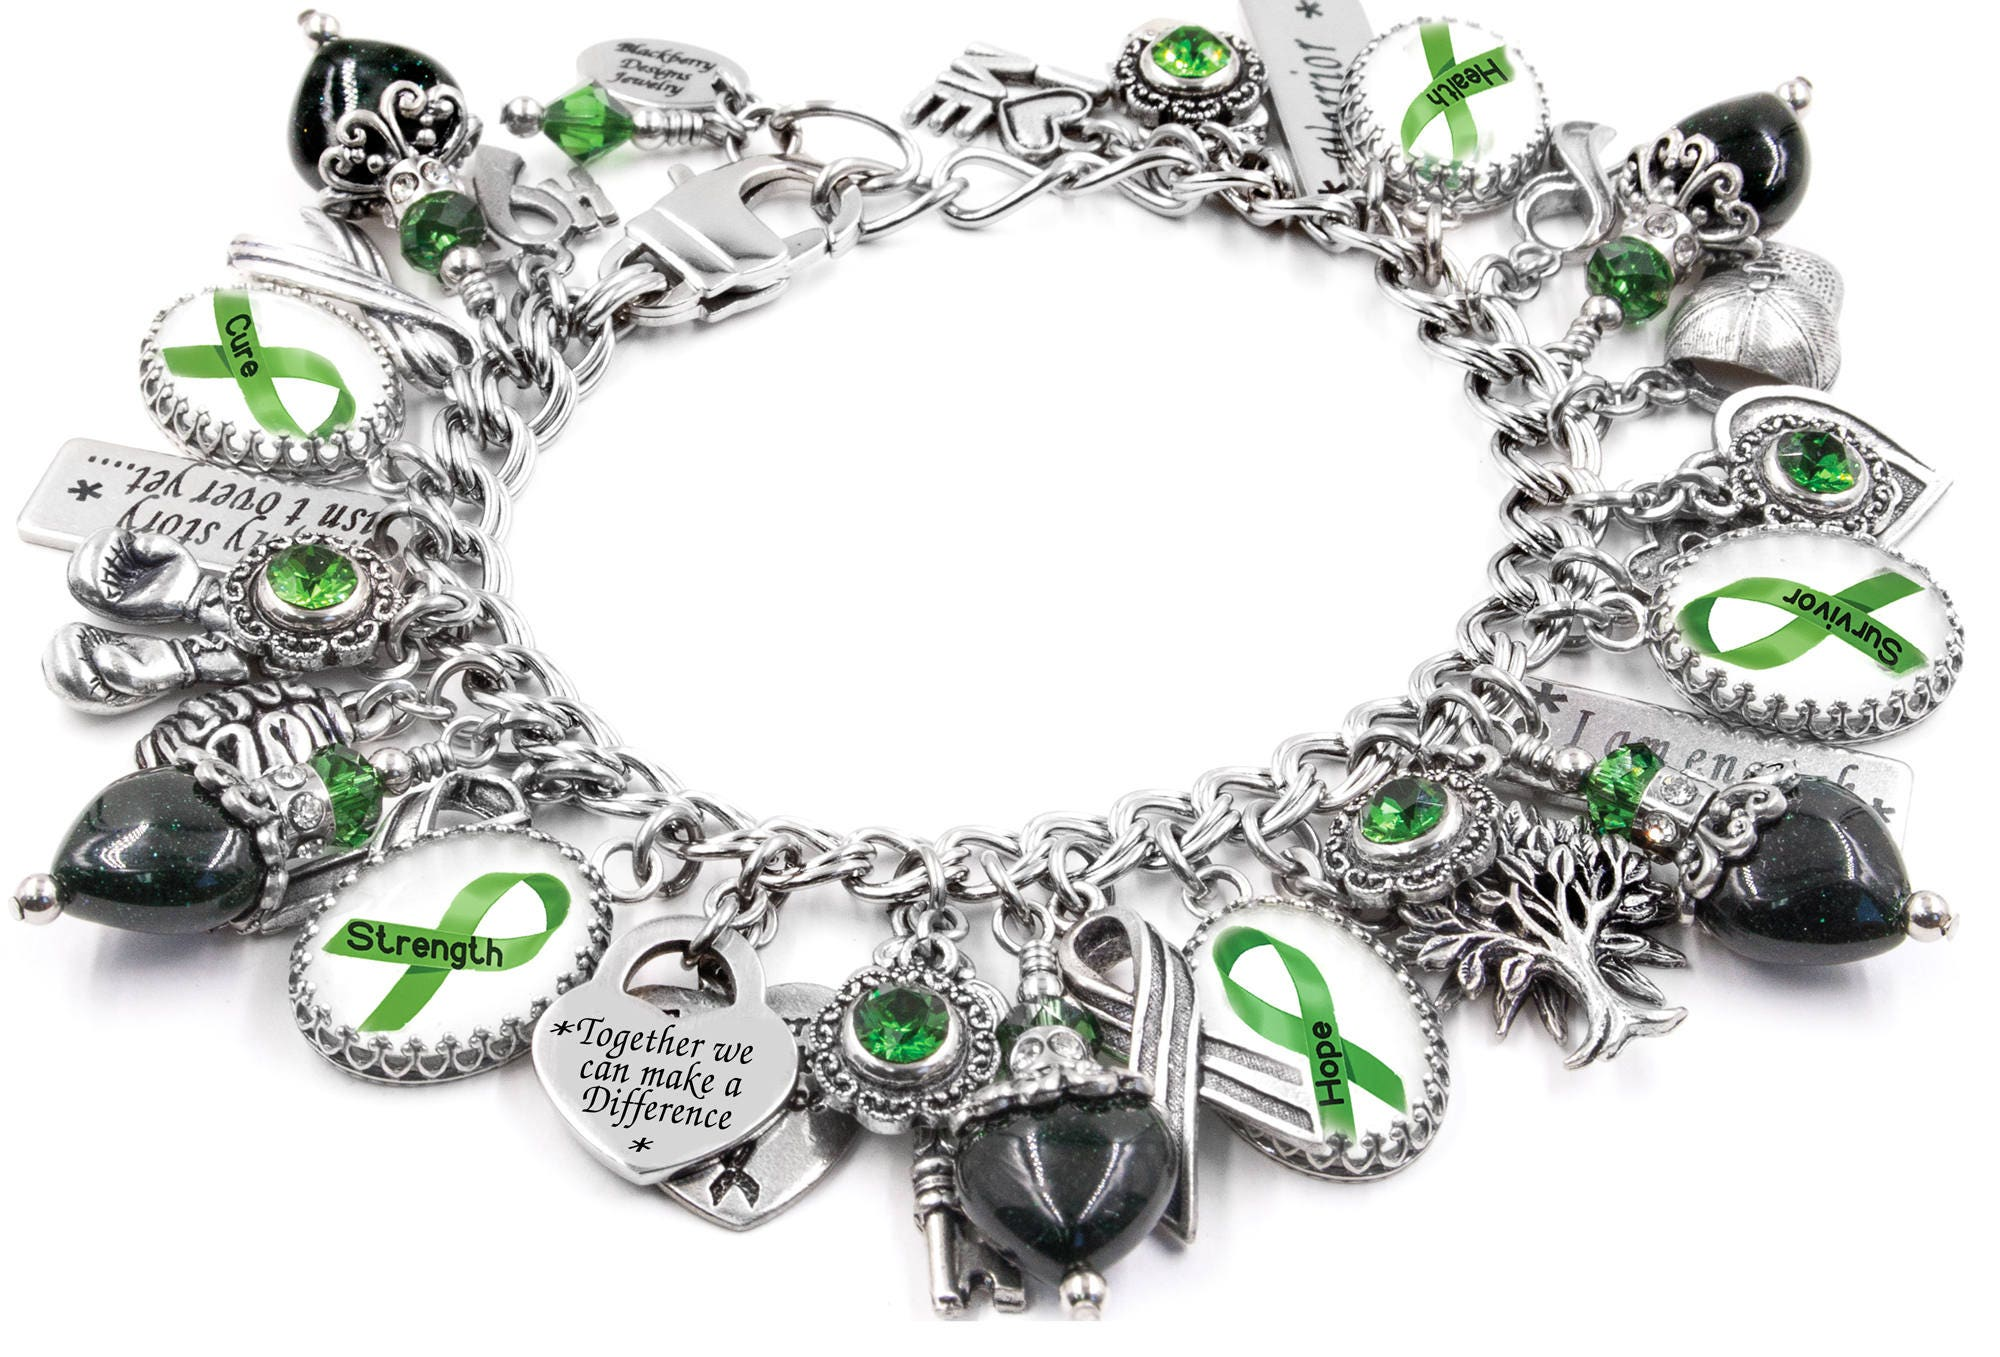 awareness unite and counseling the each which mental universal for bracelet health is to color united incorporates fighters symbol handcrafted green survivors giveaway